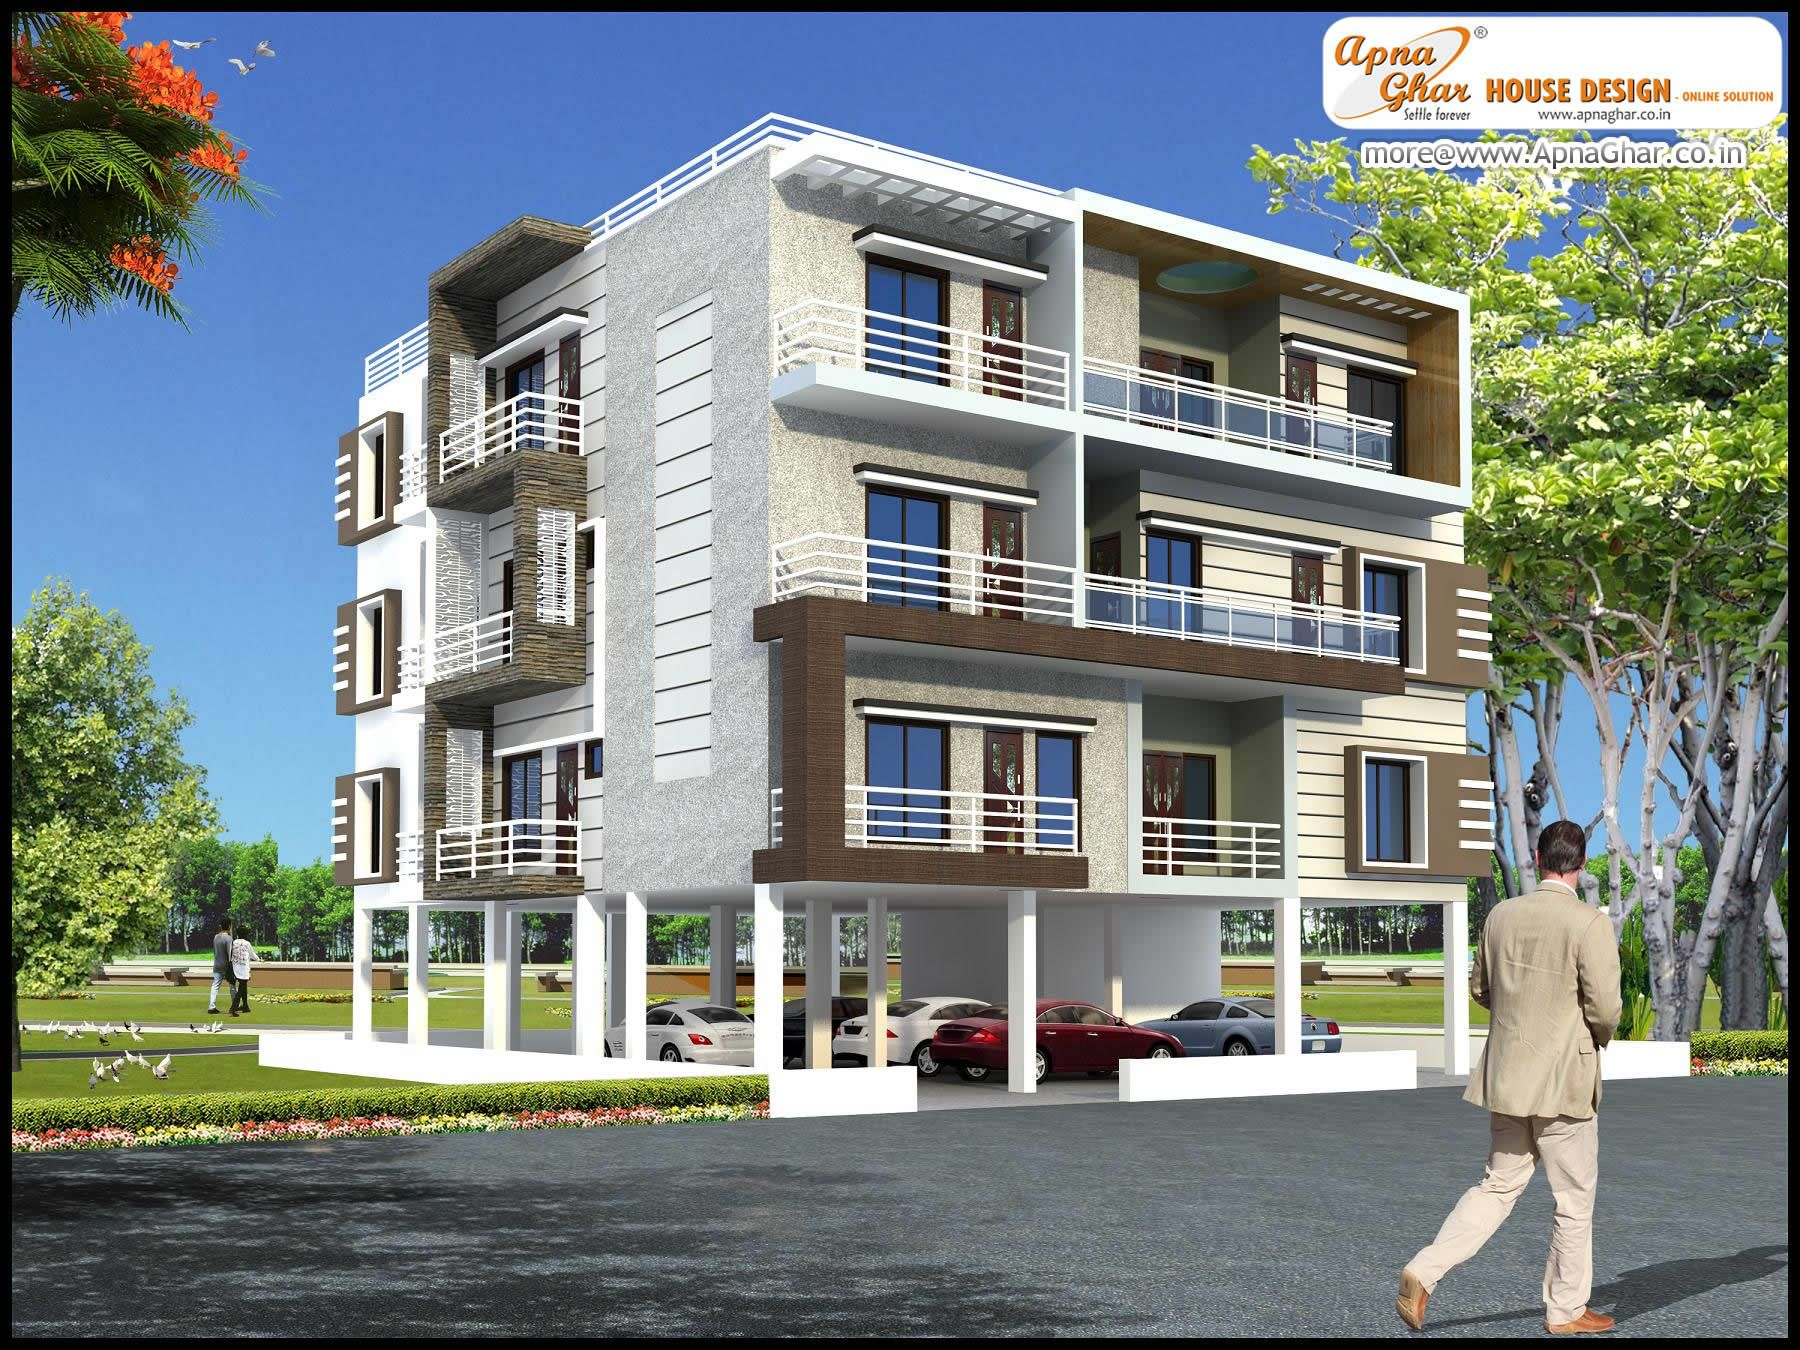 Beautiful Modern Apartment Exterior Design An Online Complete Architectural Solution  Provider Company Click This Link To View